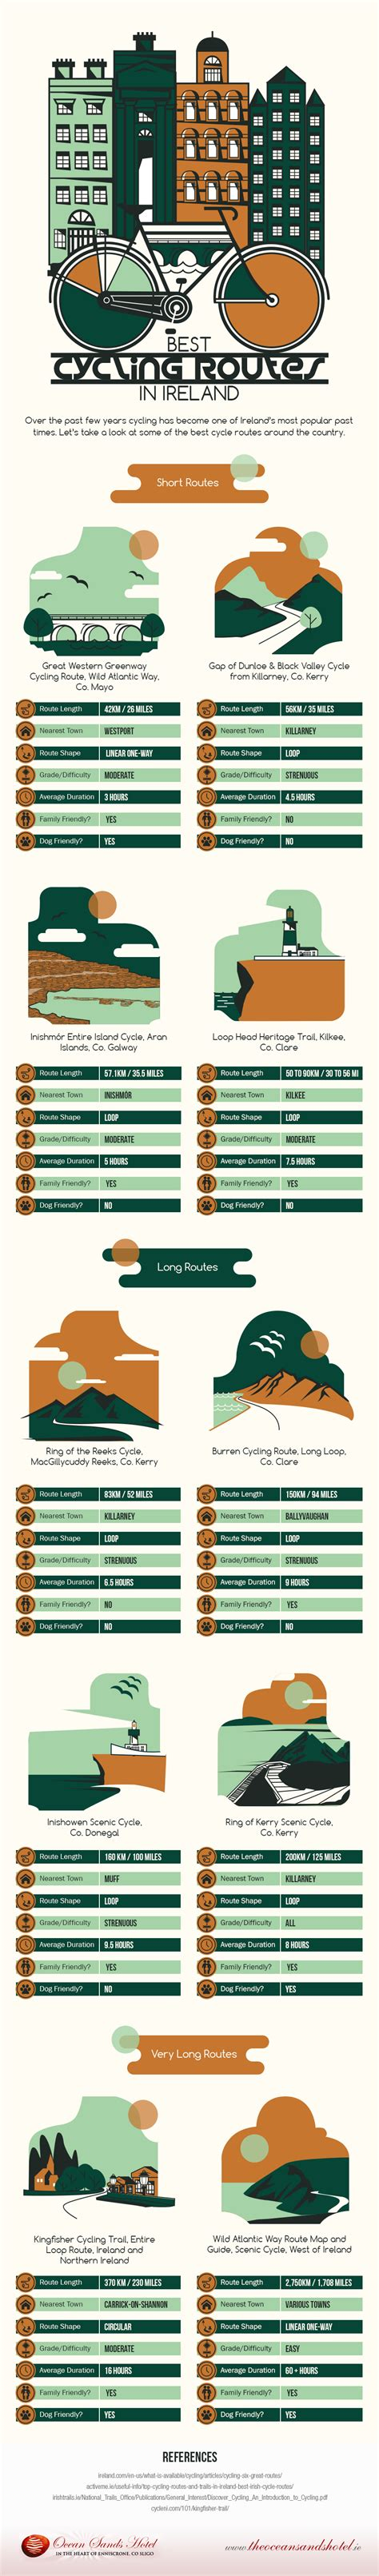 best bicycle routes best cycling routes in ireland infographic